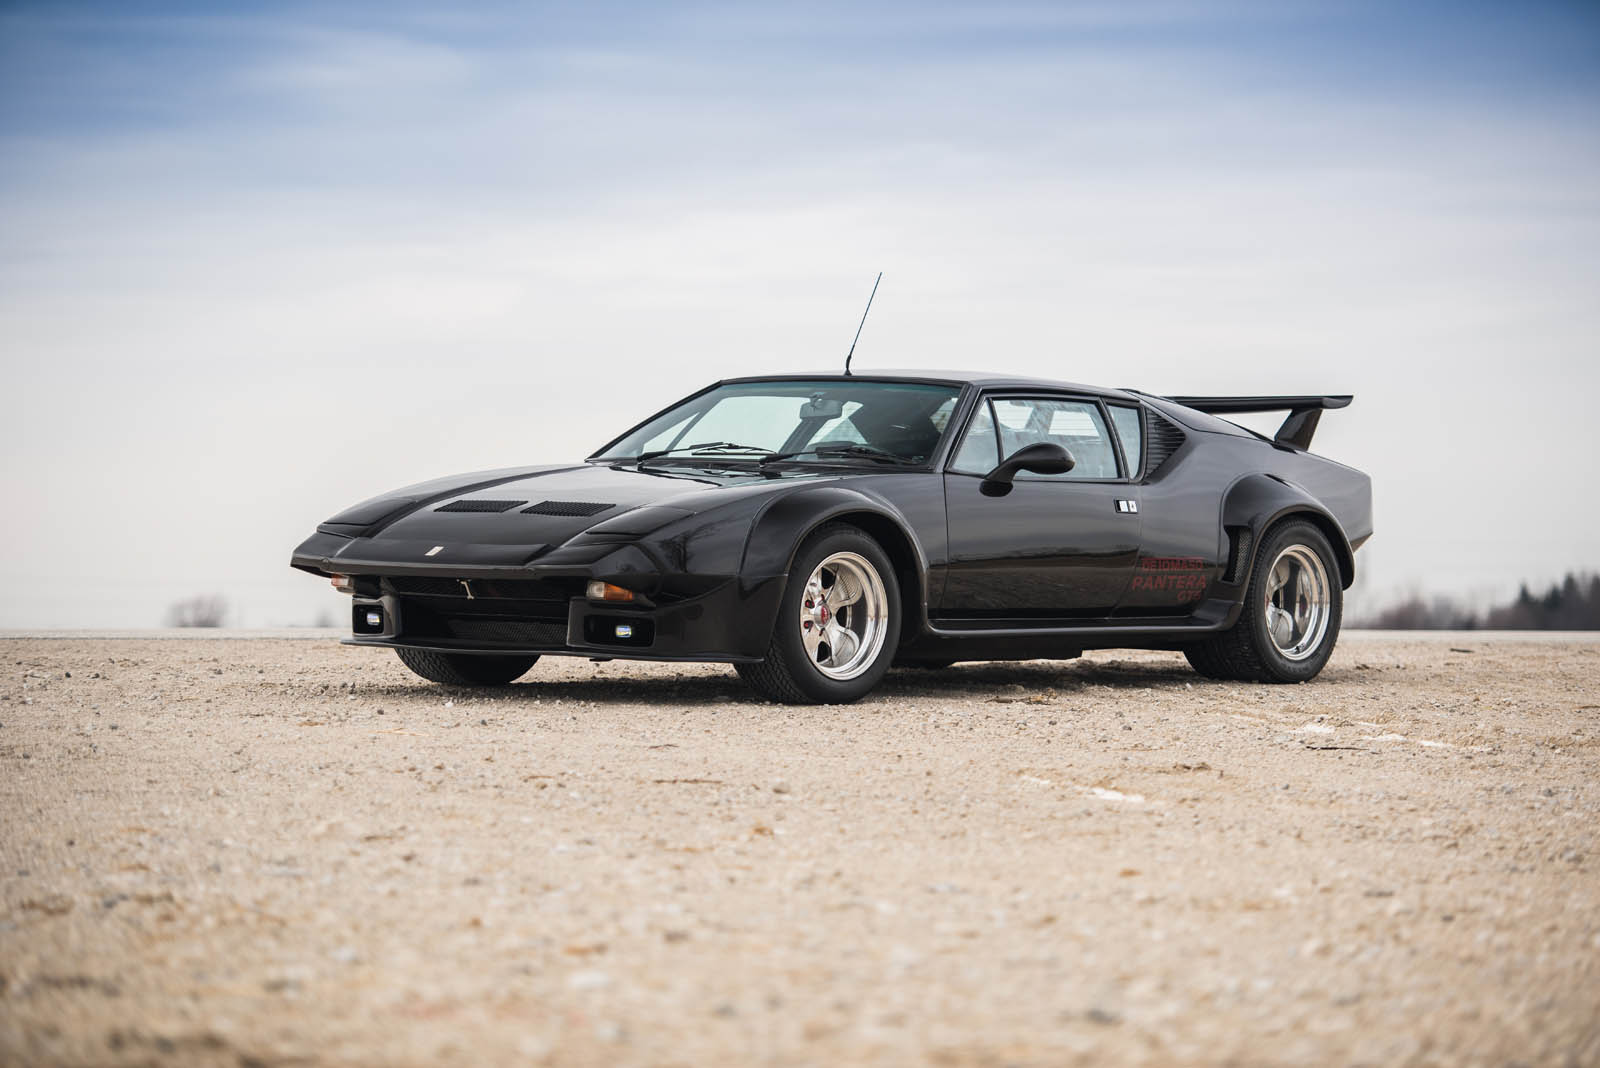 Leather Sofas Auction Corner Sofa Uk Online Forget About A De Tomaso Revival And Give Us This Pantera ...